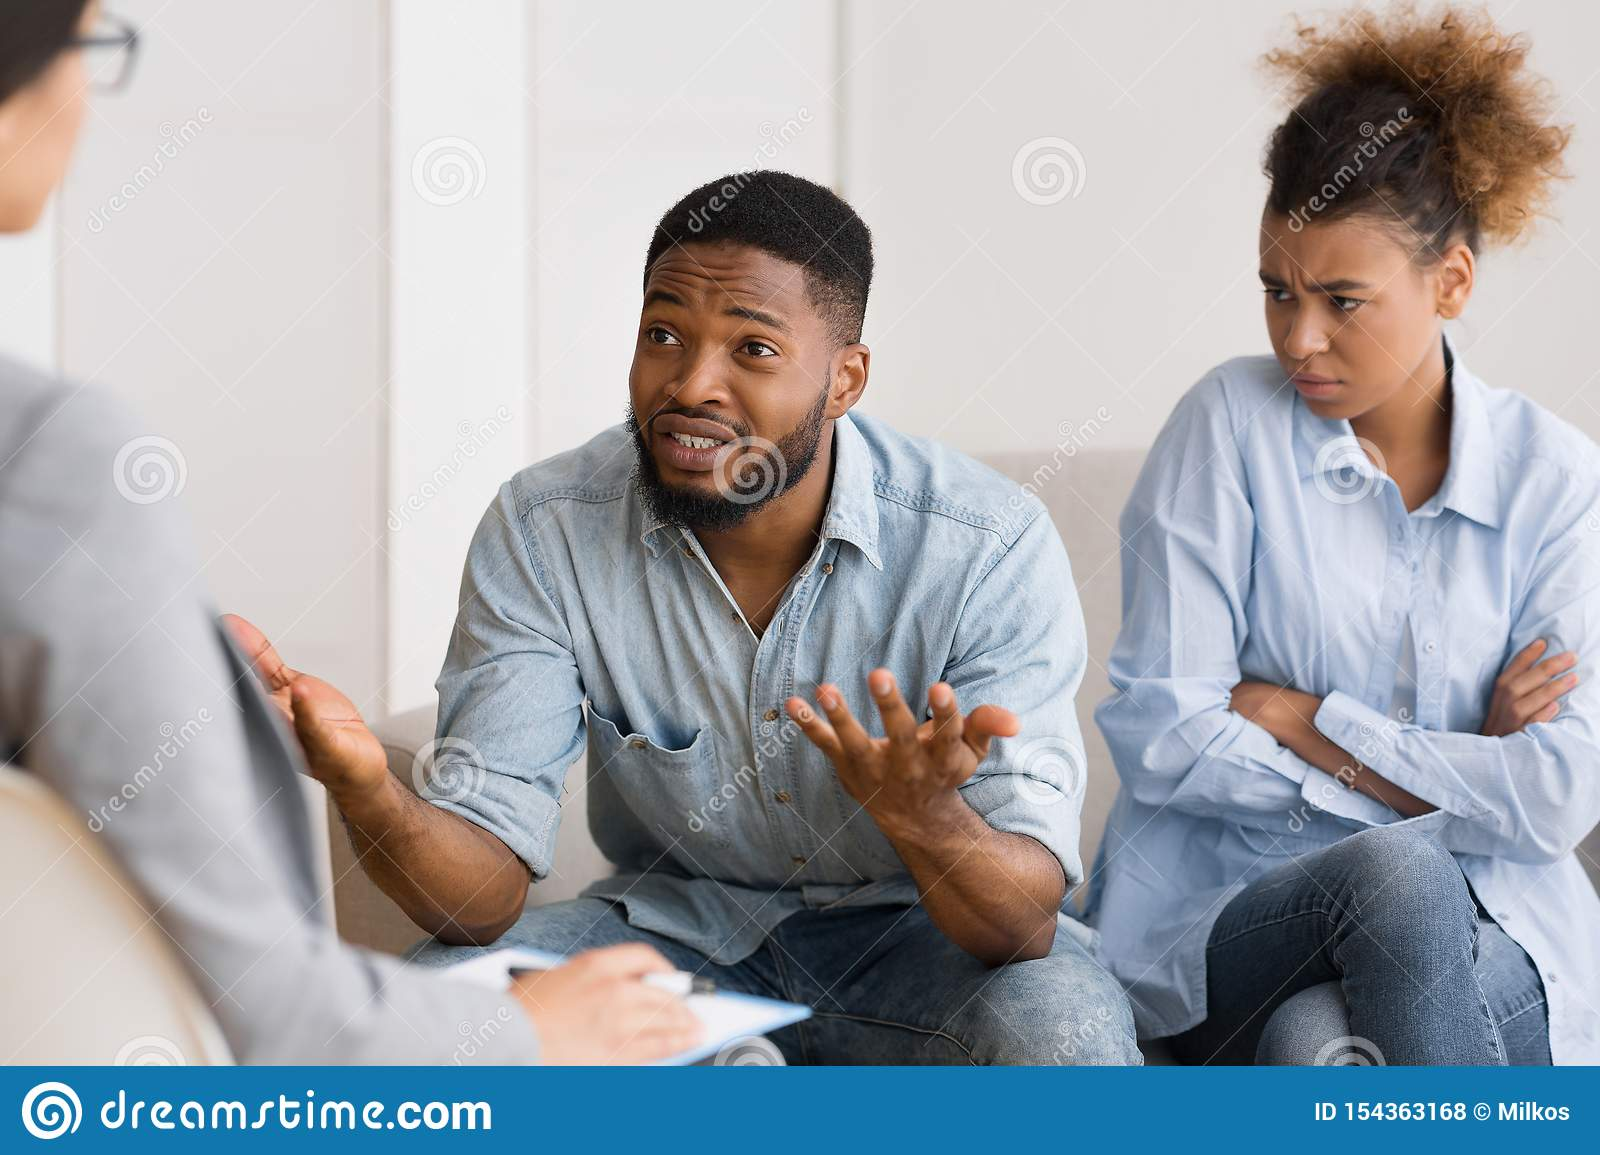 African American Husband Talking To Psychologist Sitting Next To Wife